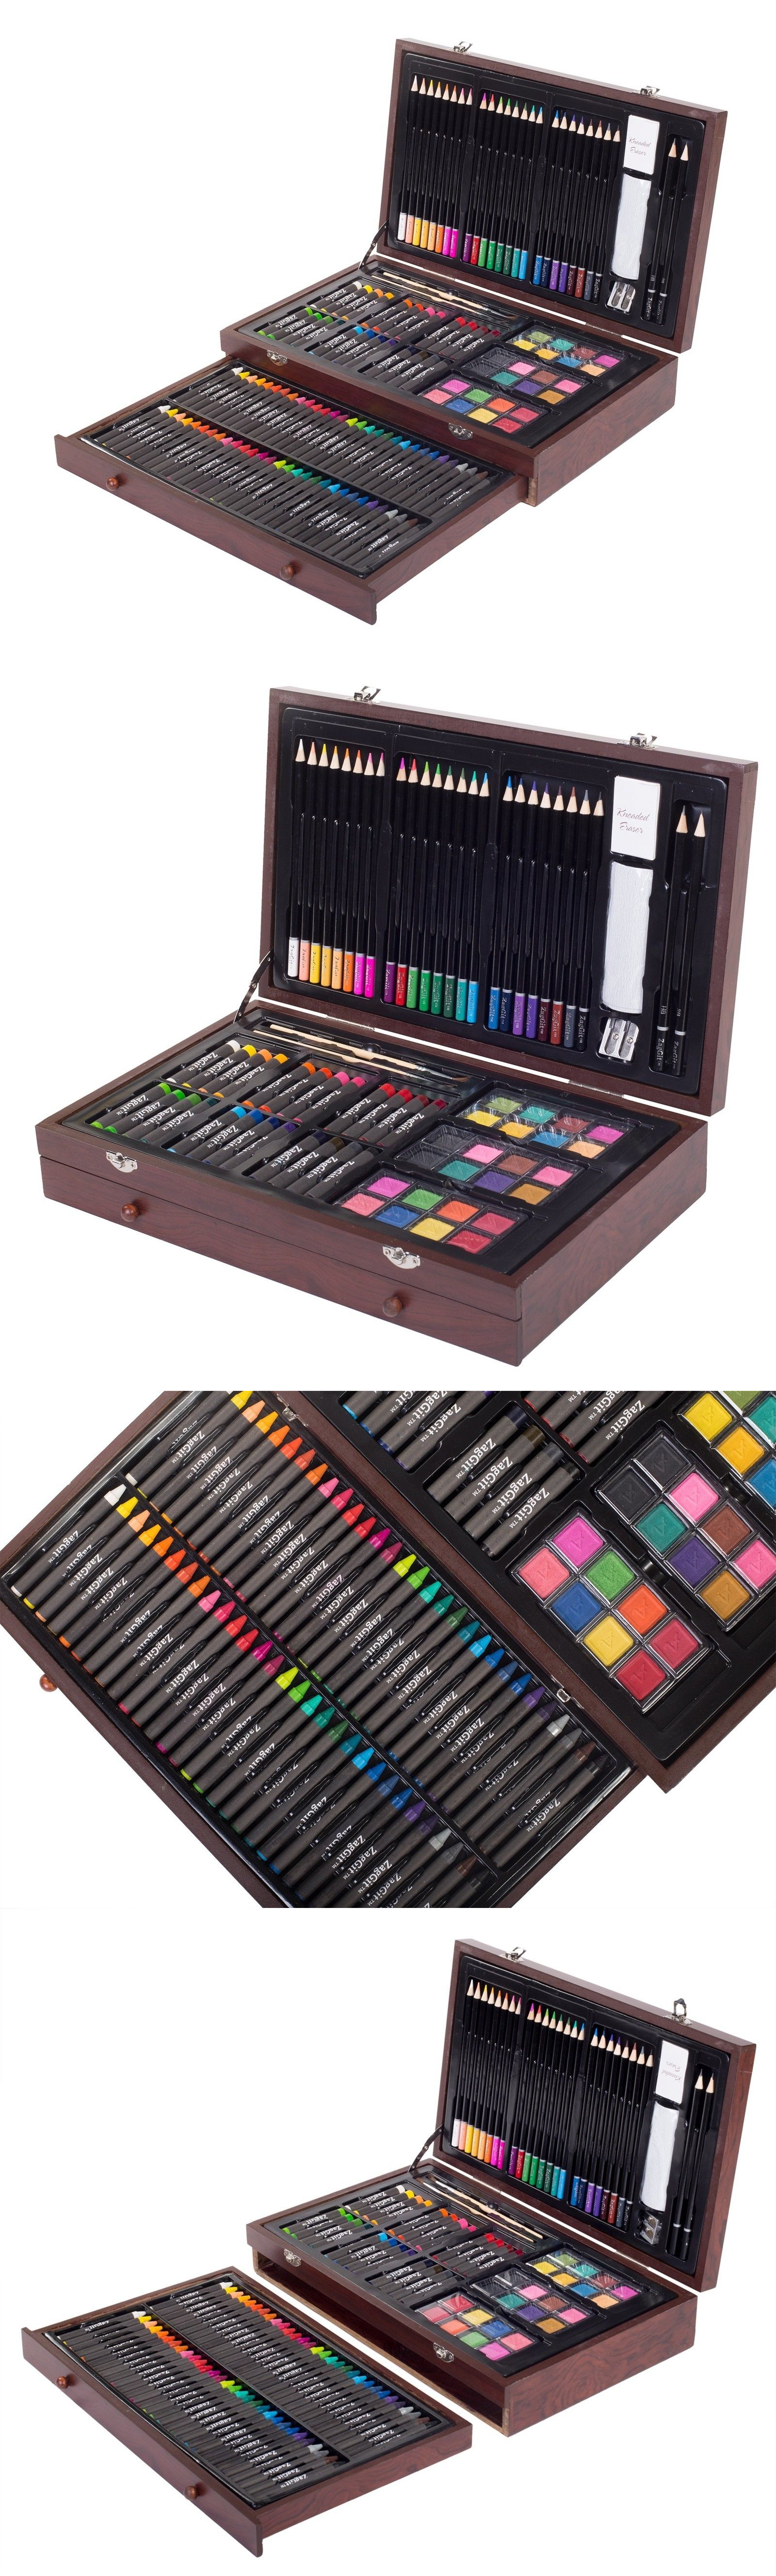 Art Pencils and Charcoal 28108: Art Supplies For Teens Adults Coloring Pencils Shading Paint Set Drawing Kit New -> BUY IT NOW ONLY: $32.99 on eBay!